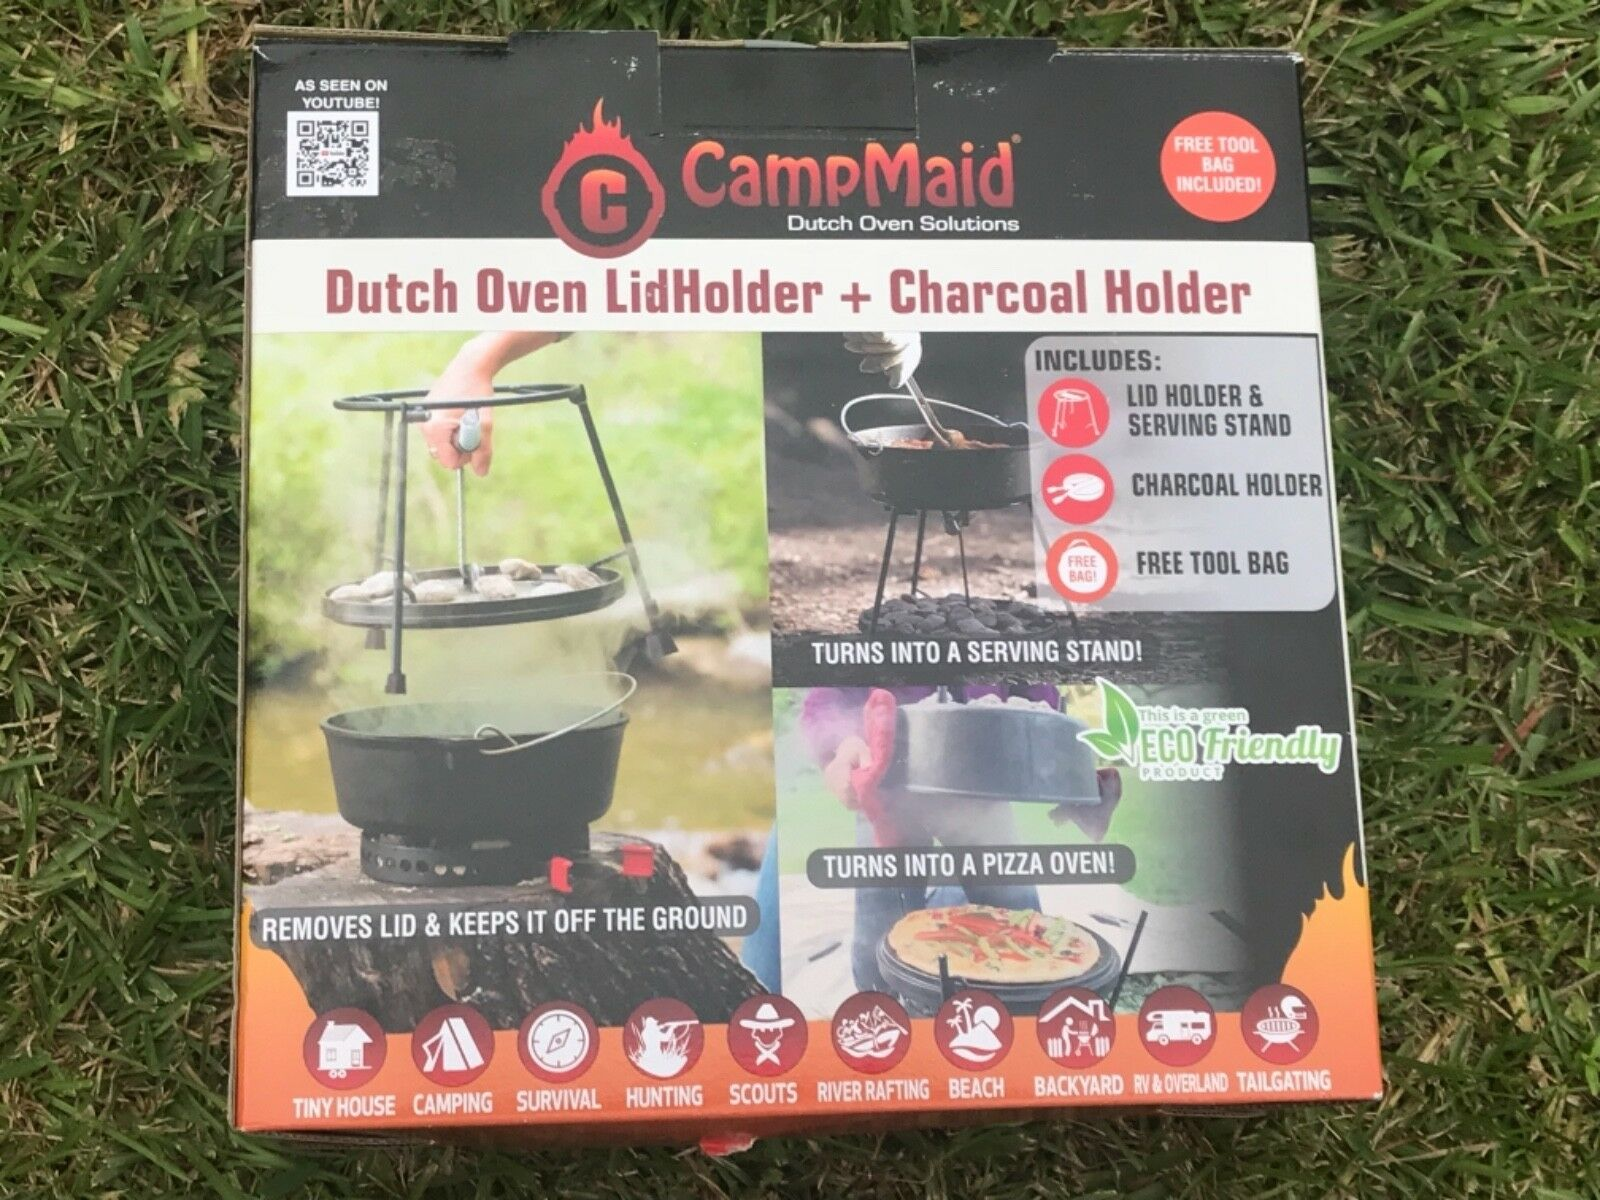 CampMaid 60005 2 Piece Set Dutch Oven Lid Lifter and Charcoal Holder Free Ship